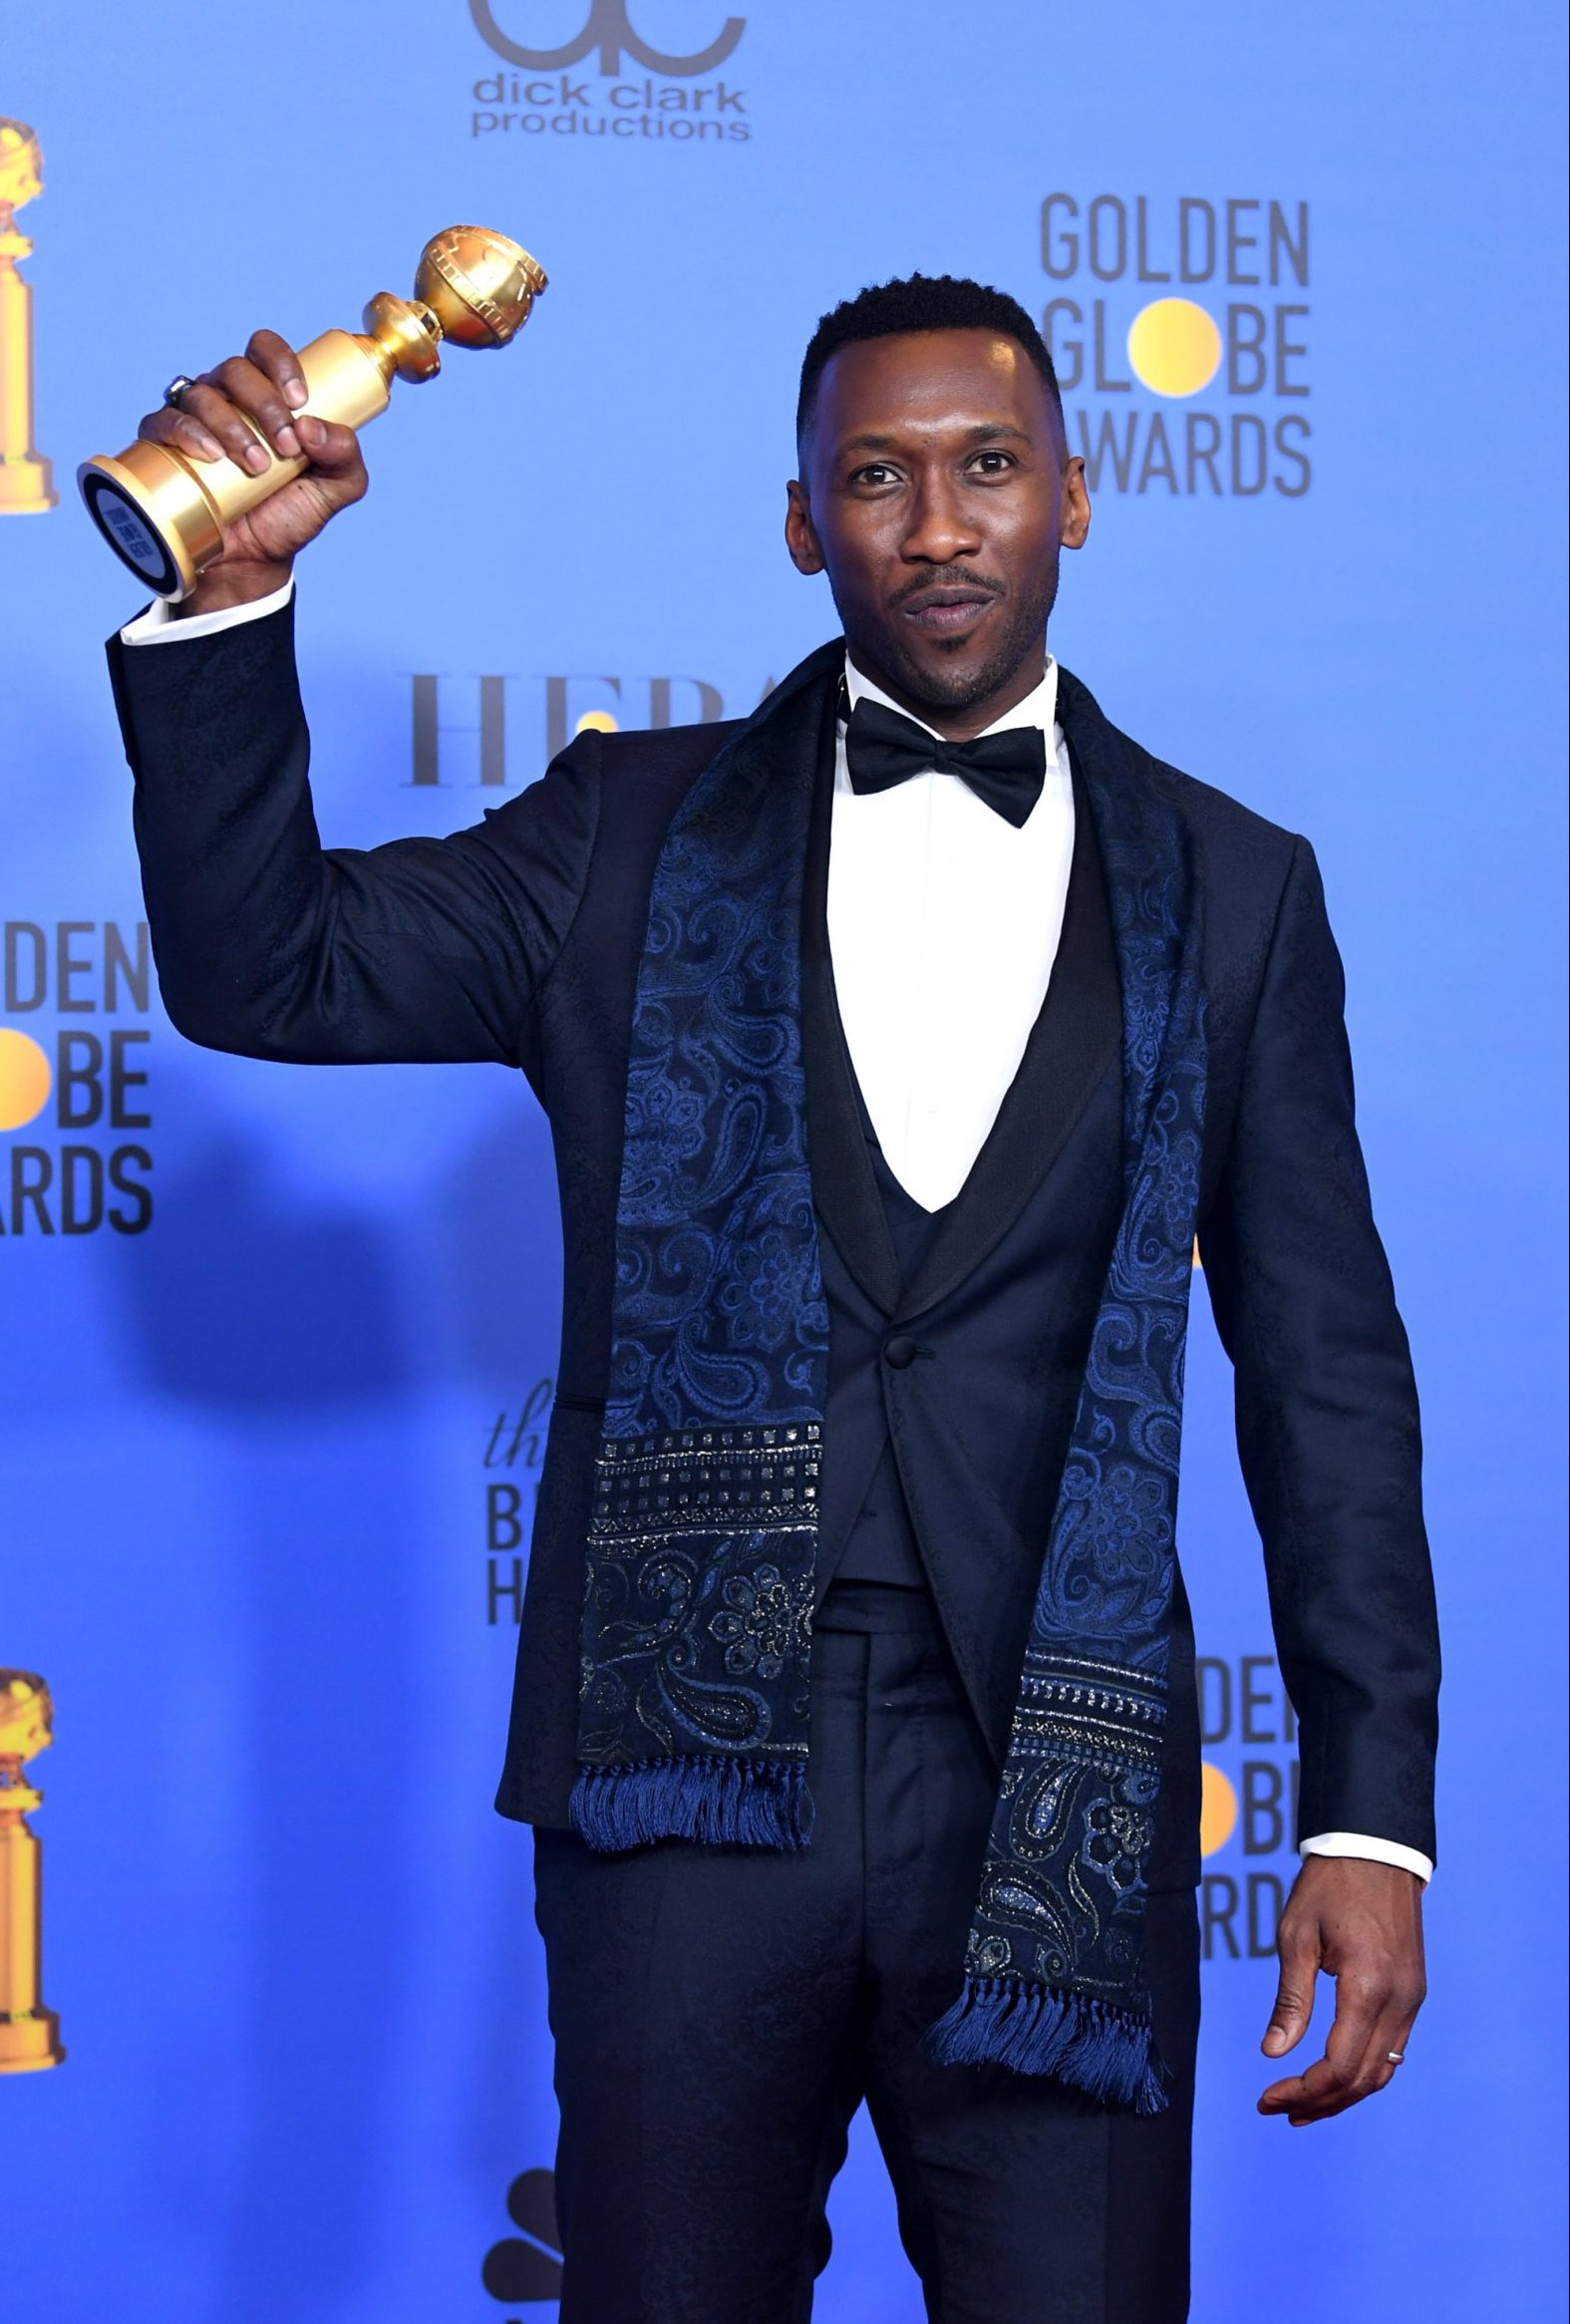 BEVERLY HILLS, CA - JANUARY 06: Best Actor in a Supporting Role in any Motion Picture for 'The Green Book' winner Mahershala Ali poses in the press room during the 76th Annual Golden Globe Awards at The Beverly Hilton Hotel on January 6, 2019 in Beverly Hills, California. (Photo by Kevin Winter/Getty Images)